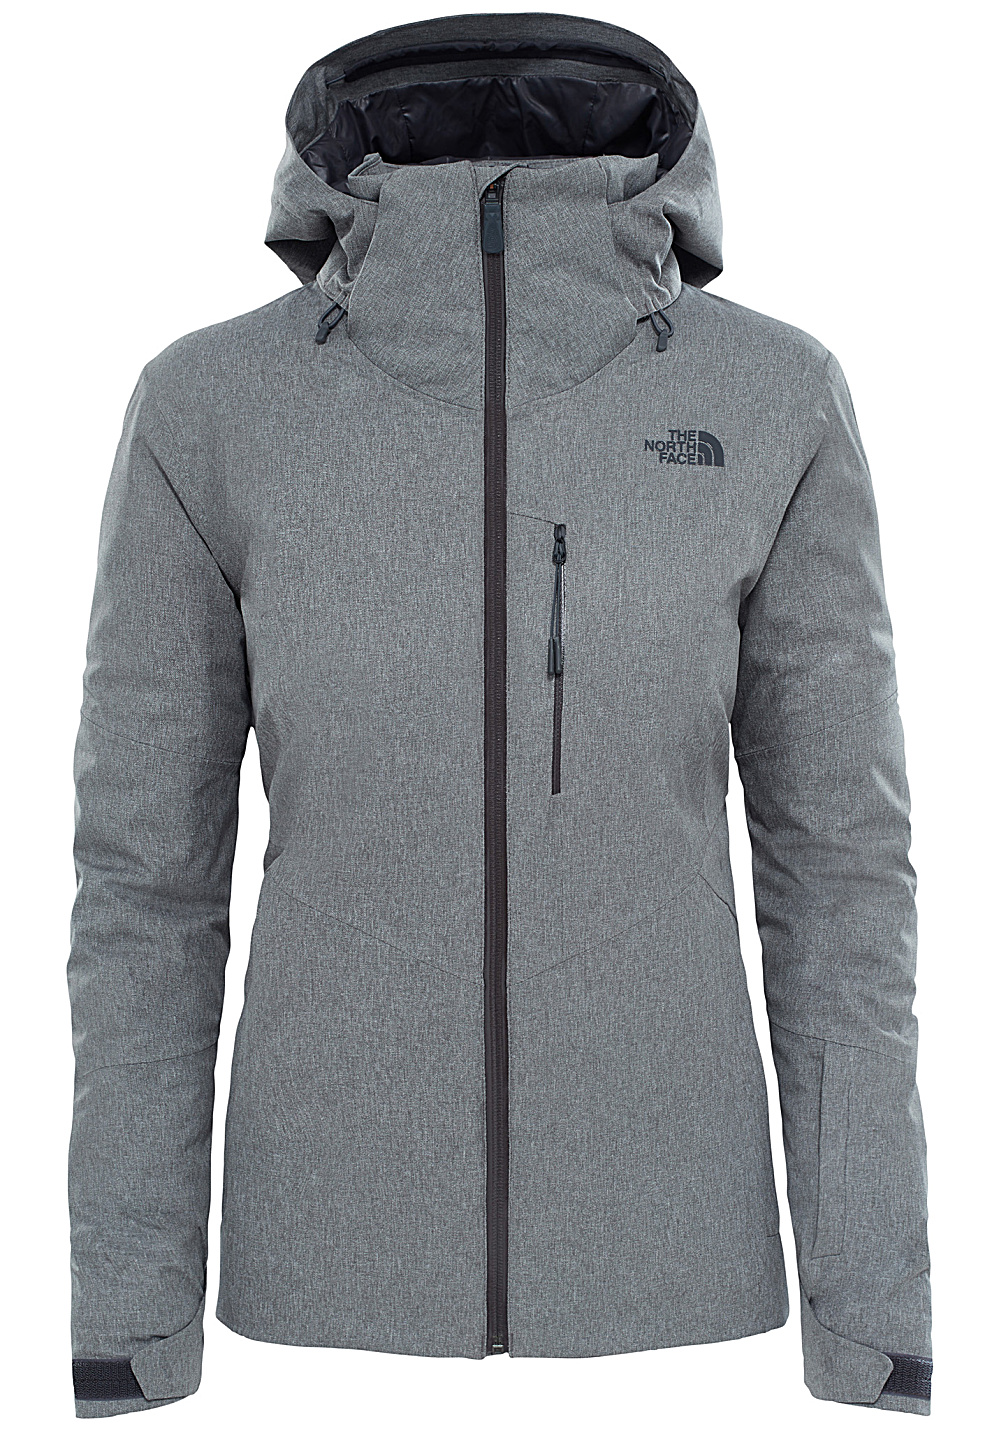 4fae8f7b5c the north face lenado jacket dame various styles 93b2e d9365 ...